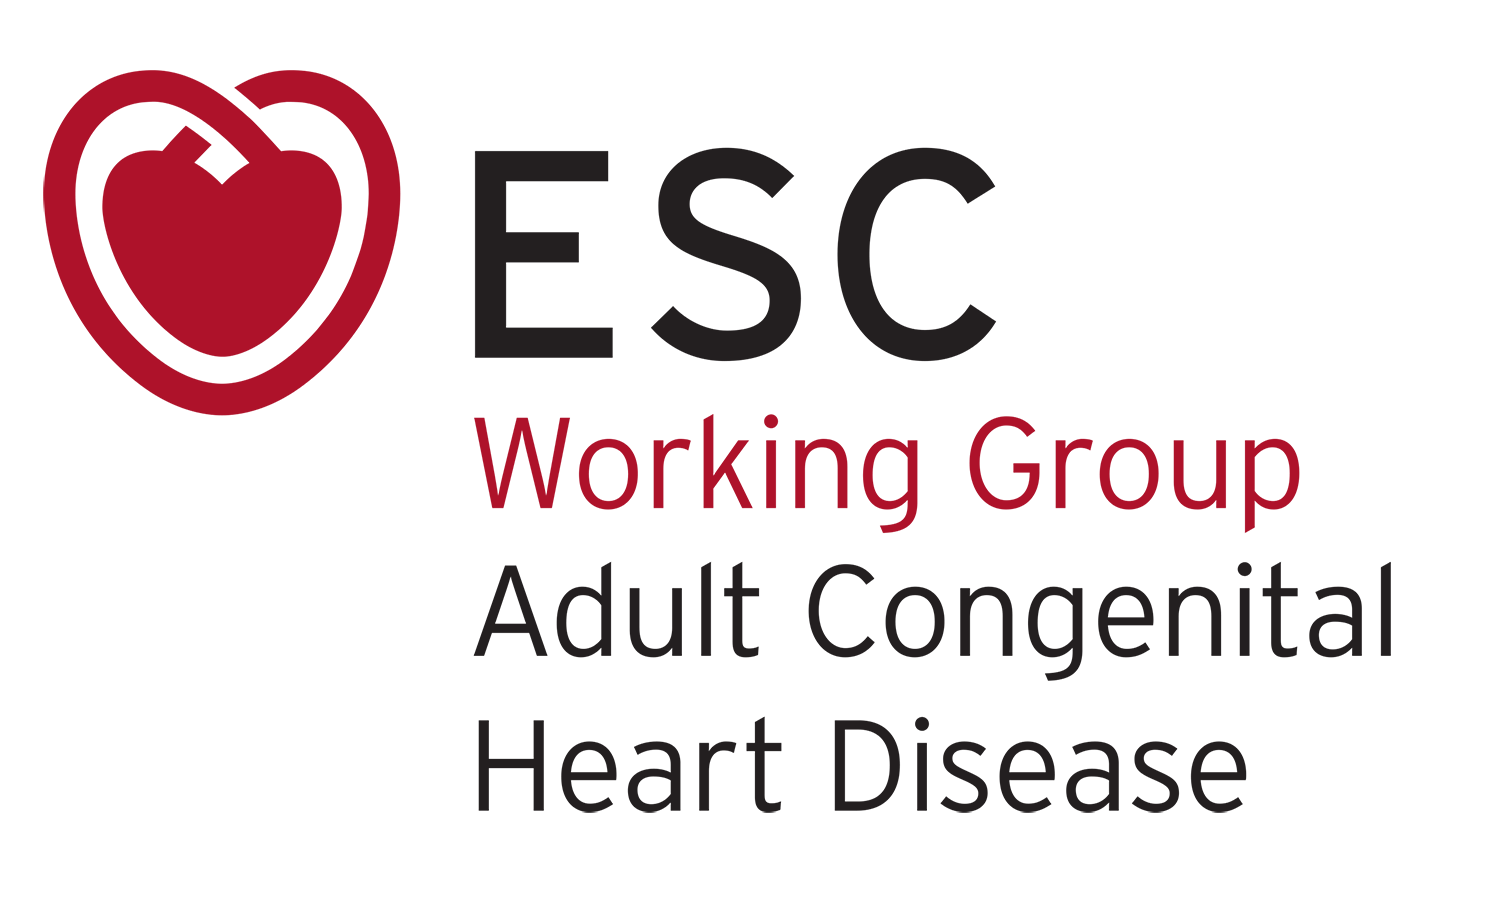 ESC-WG-Adult-Heart-Disease-Logo.png